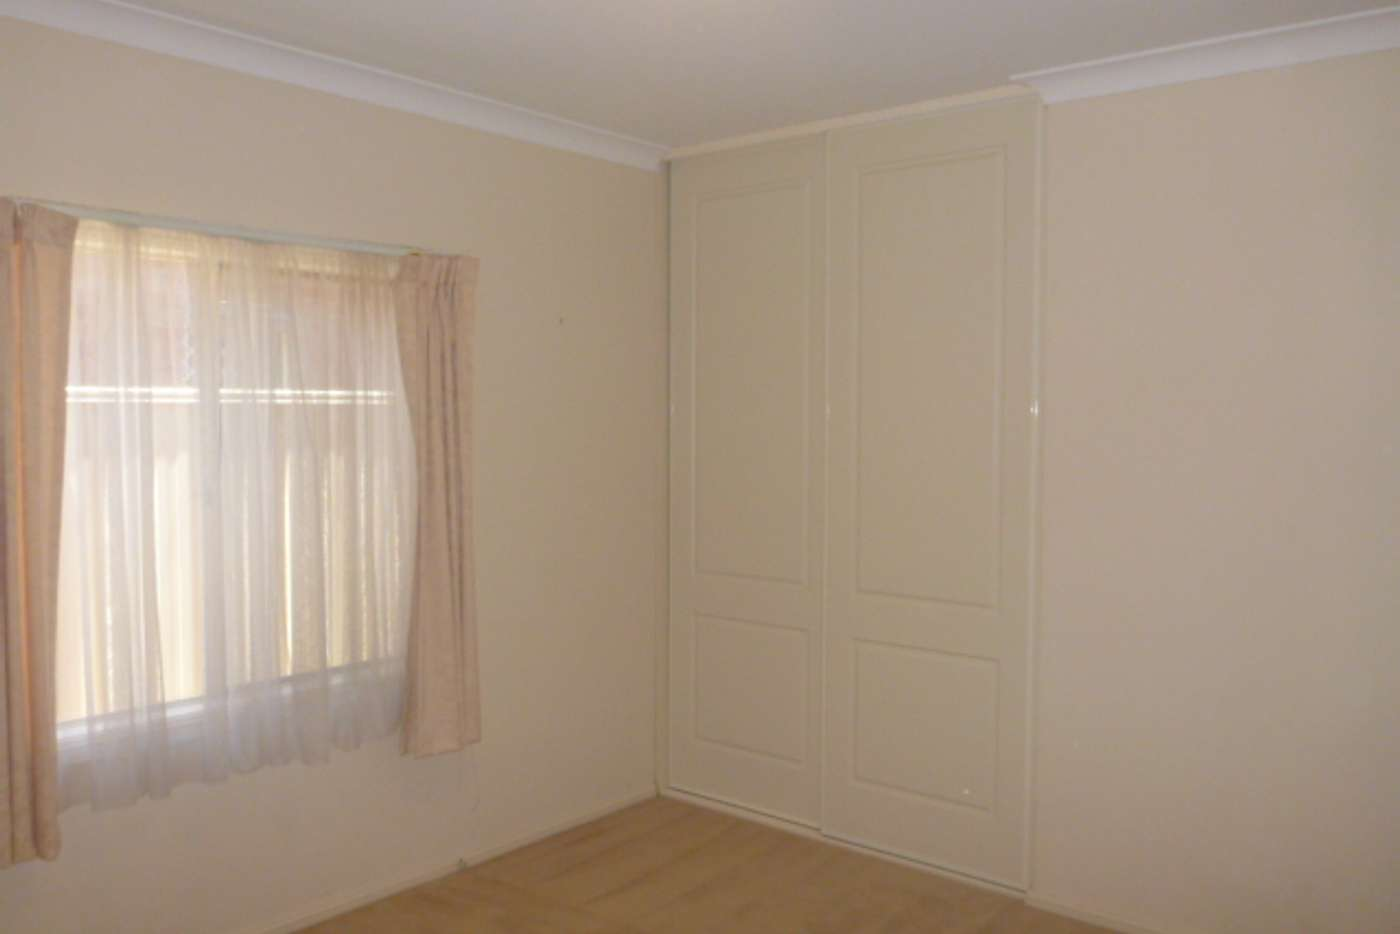 Fifth view of Homely house listing, 2C Glenavon Street, Woodville South SA 5011